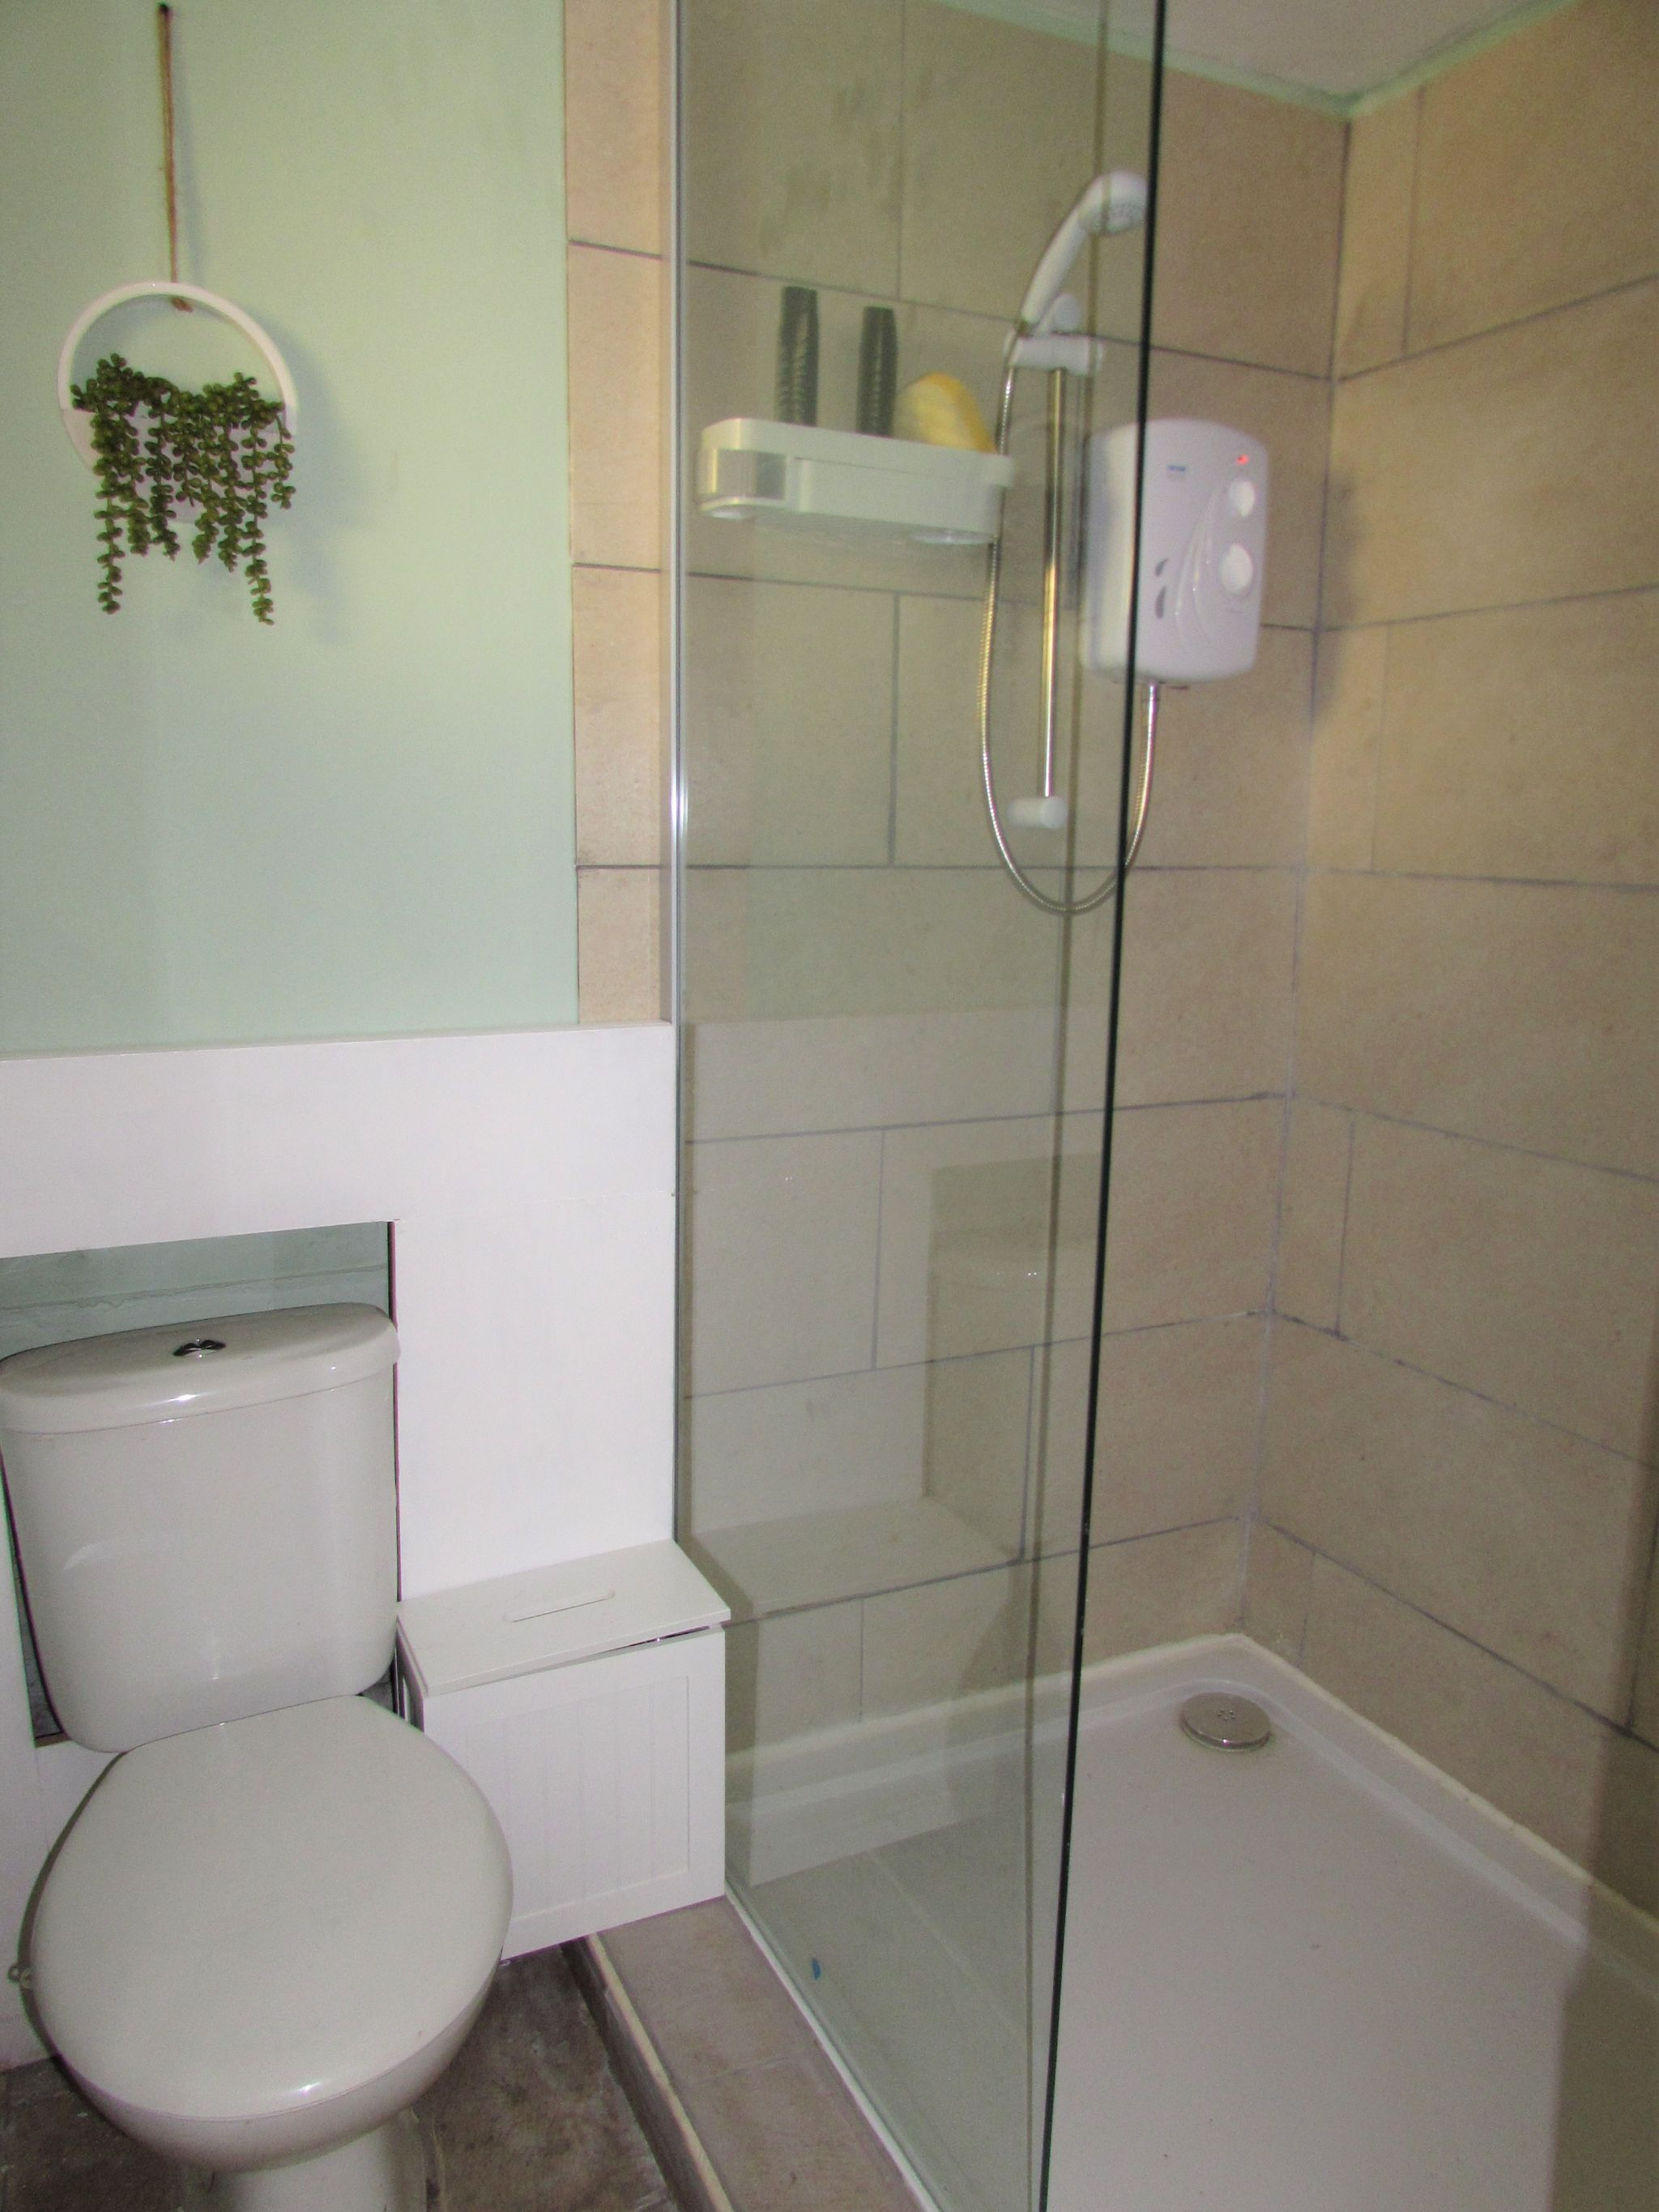 3 Bedroom Semi-detached House For Sale - Downstairs Bathroom